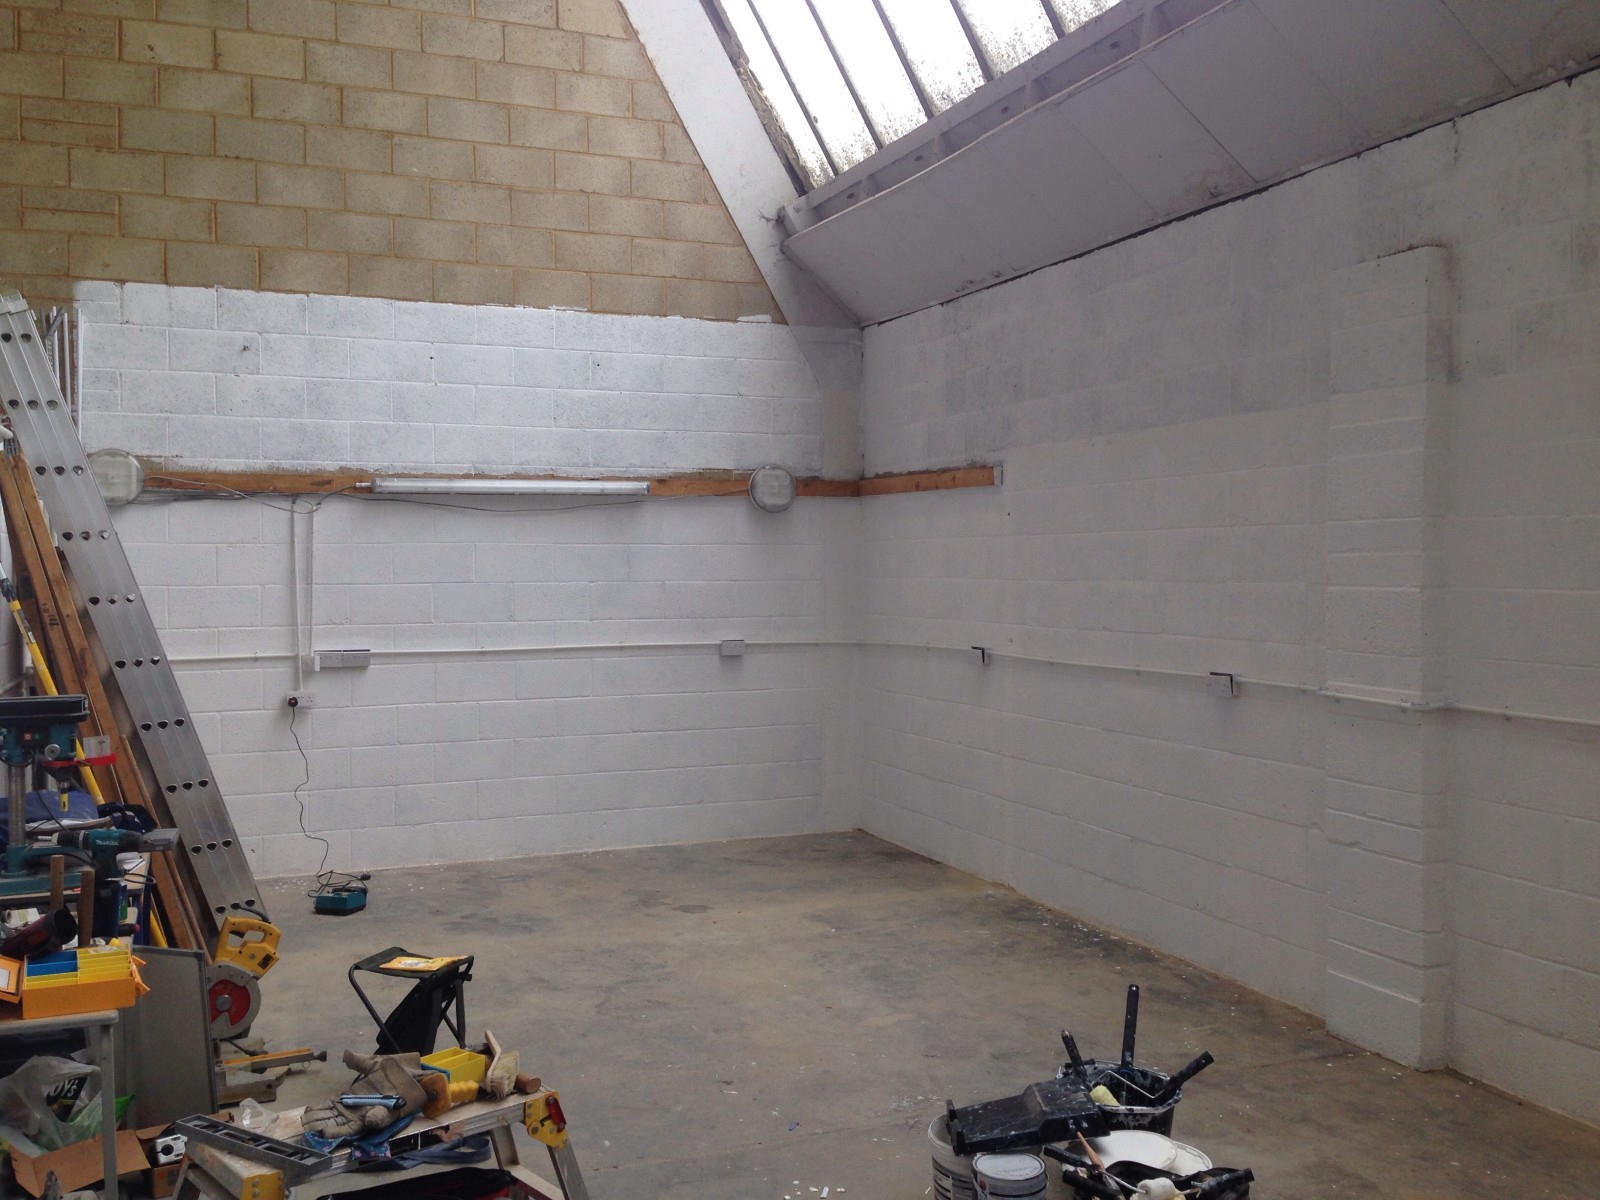 2 coats of paint - main space